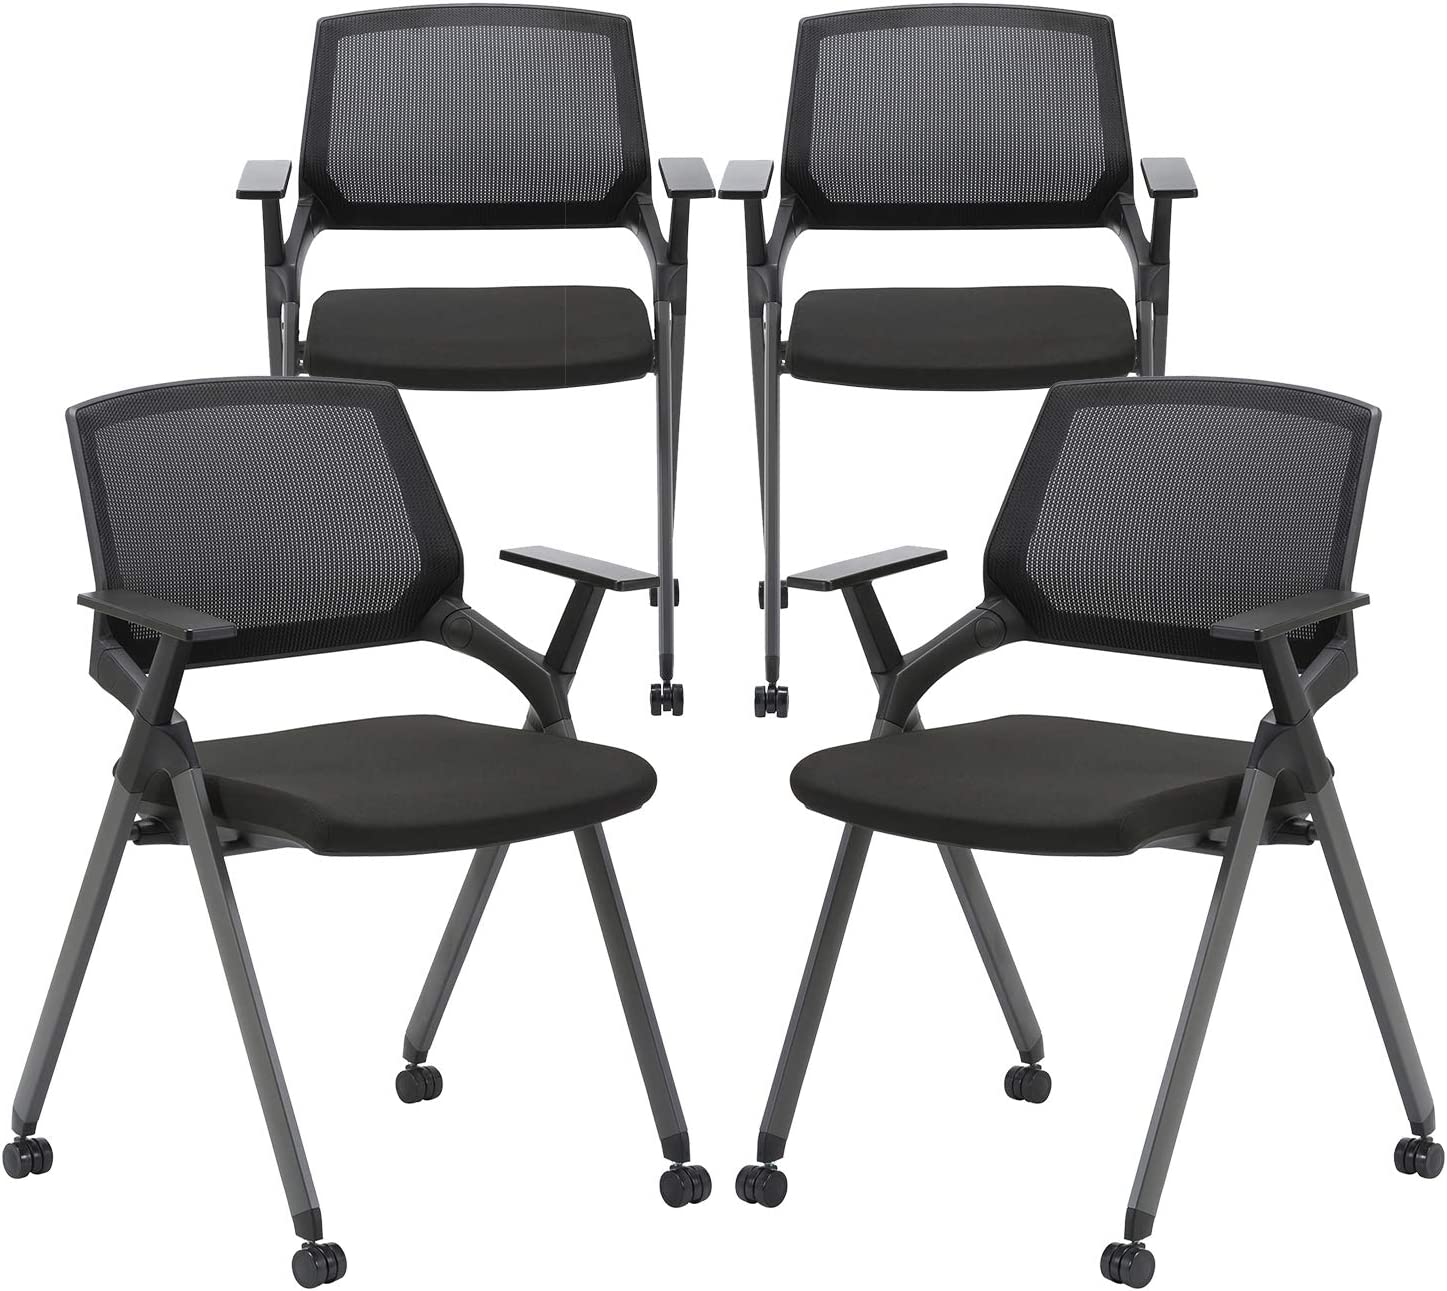 CLATINA Mesh Guest Reception Stack Chairs with Caster Wheels and Arms for Office School Church Conference Waiting Room Black (4 Pack)